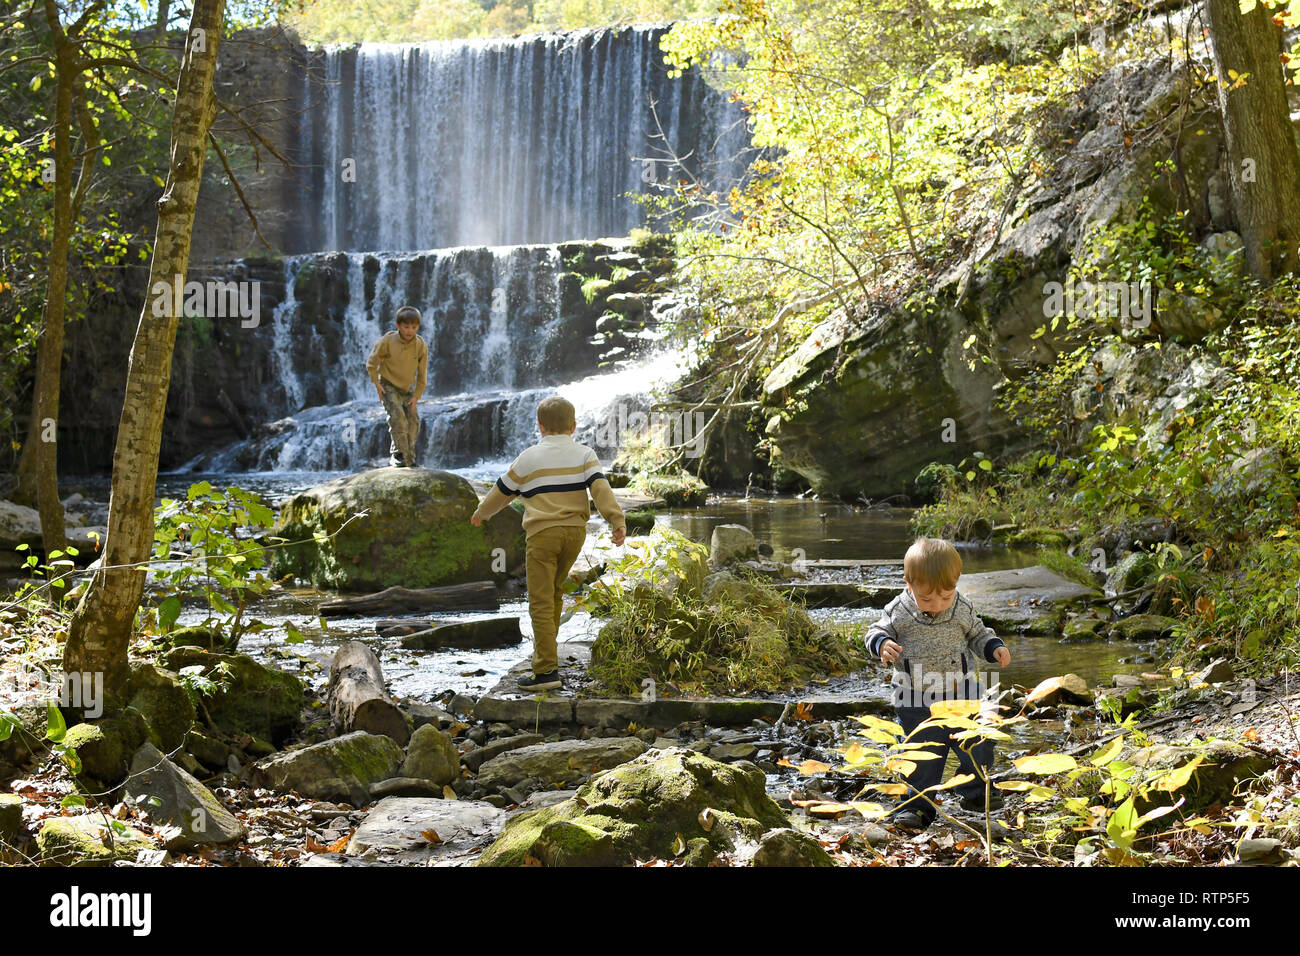 Three boys playing in a waterfall and nearby creek - Stock Image